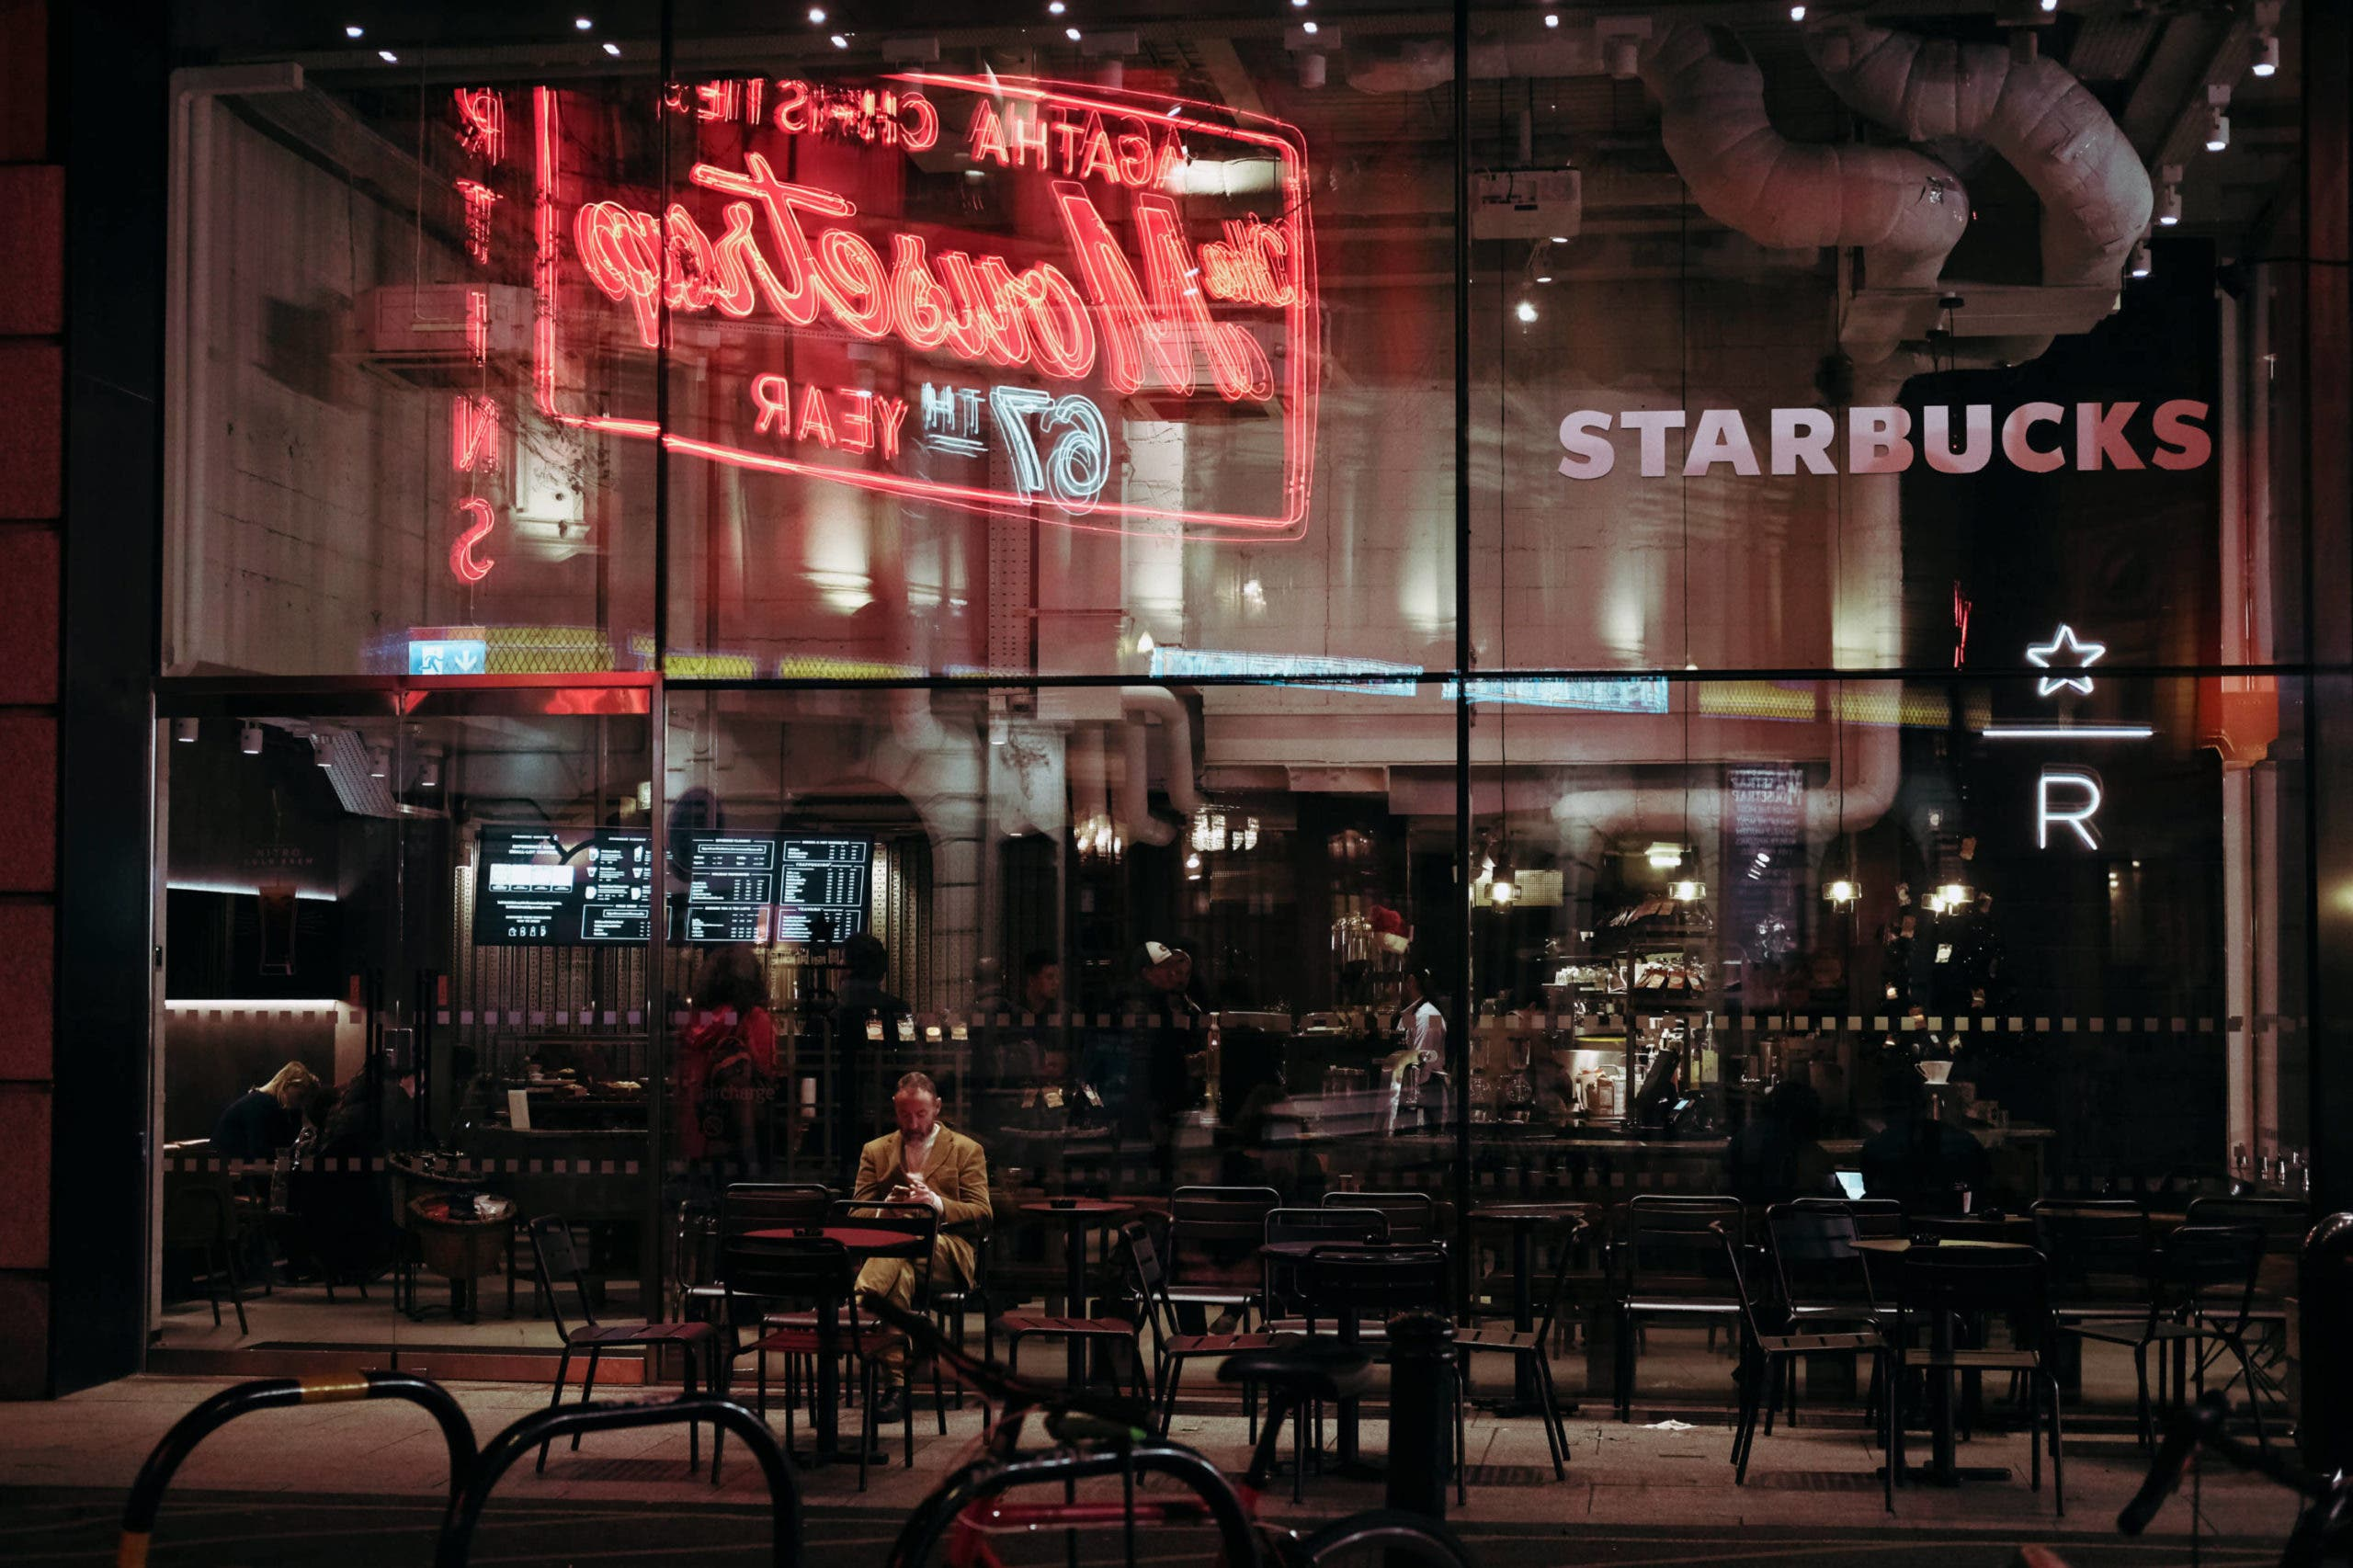 How to Shoot Street Photography at Night and Be Creative